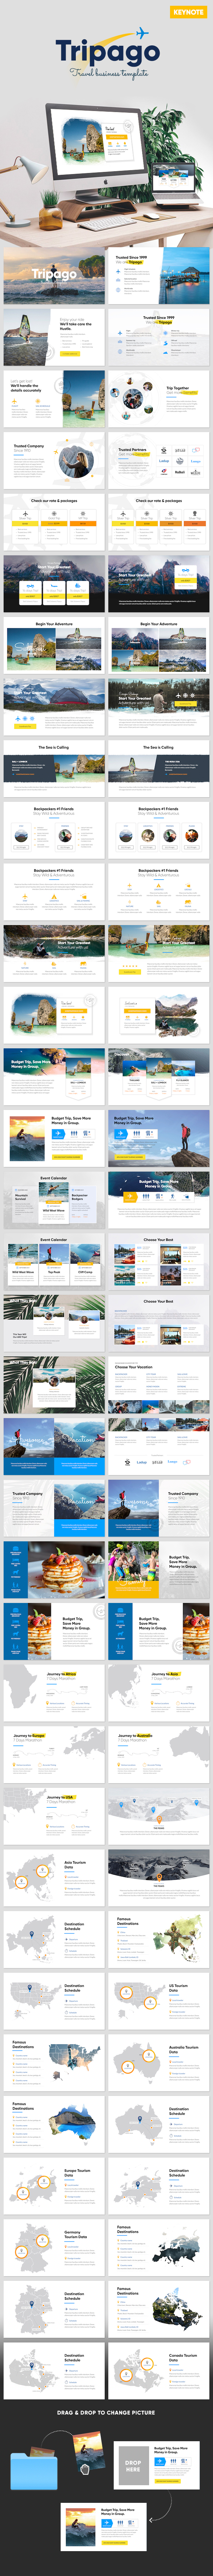 Tripago - Travelling Business Keynote Template